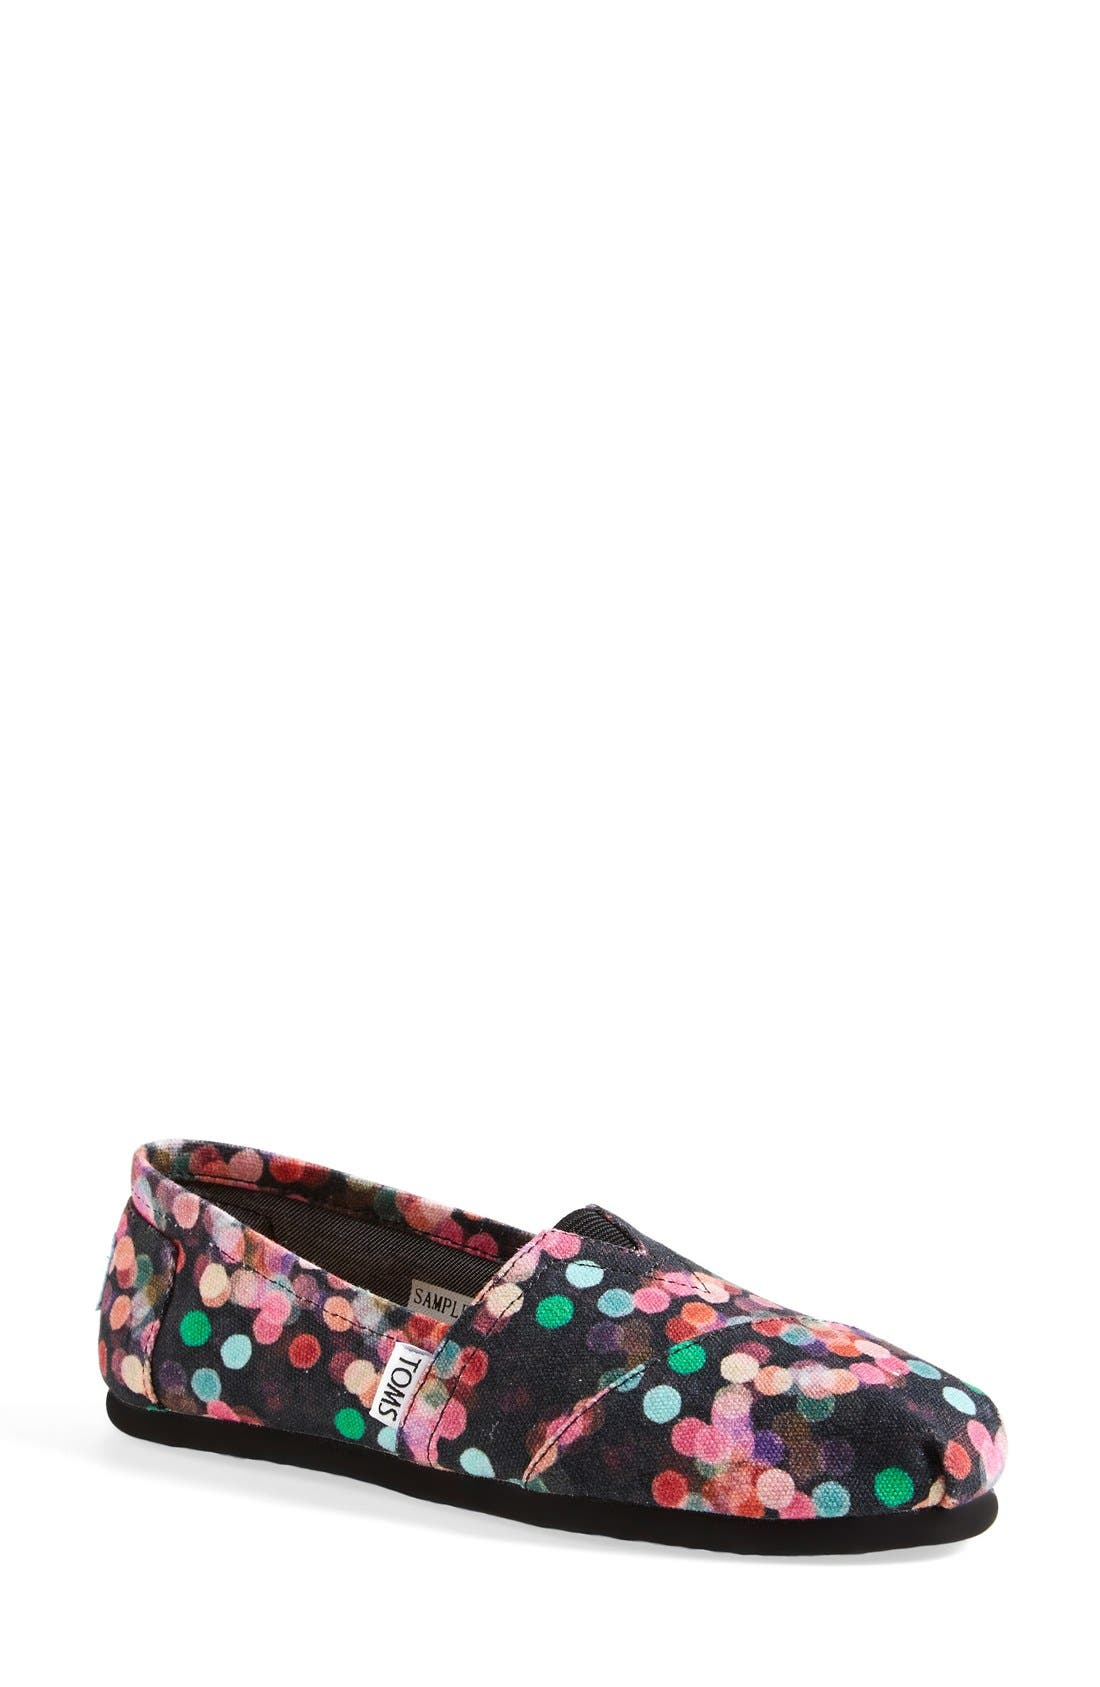 Main Image - TOMS 'Classic - Night Lights' Slip-On (Nordstrom Exclusive) (Women)